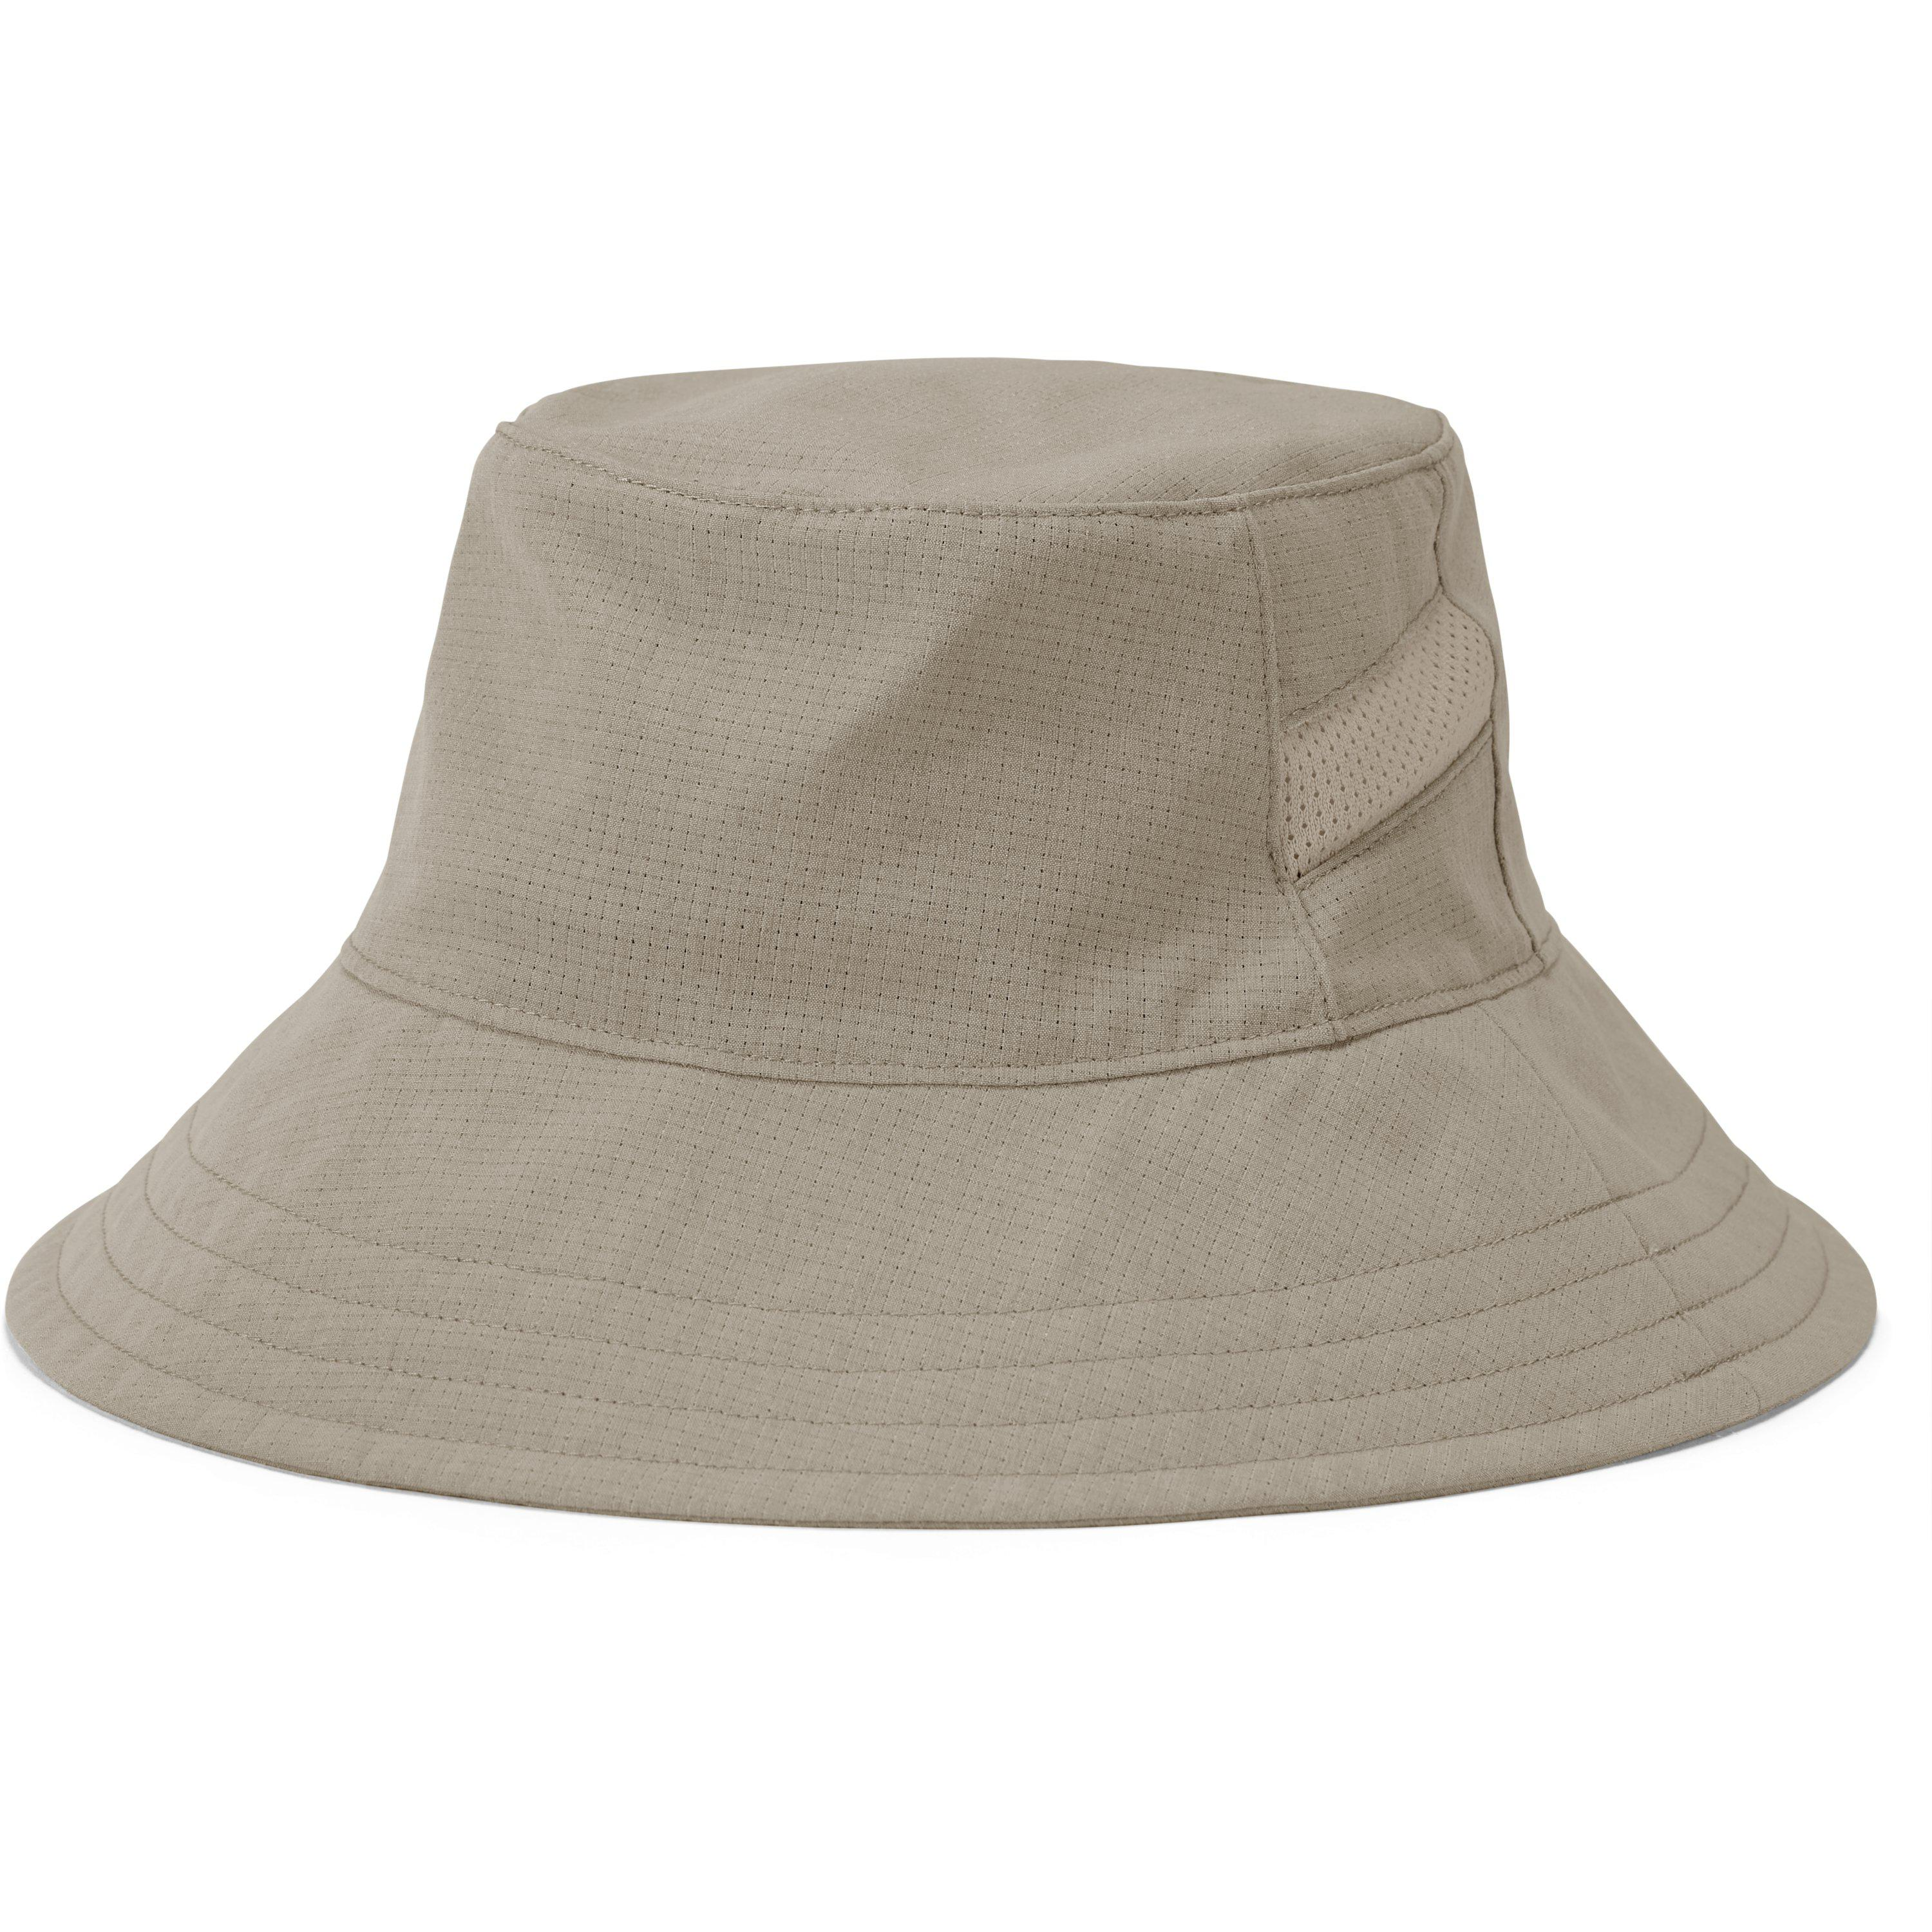 5acc92ddc91 Mens Bucket Hats online store 1ab6f 18532  Fishing Apparel Fishing Hats  Under Armour® ...